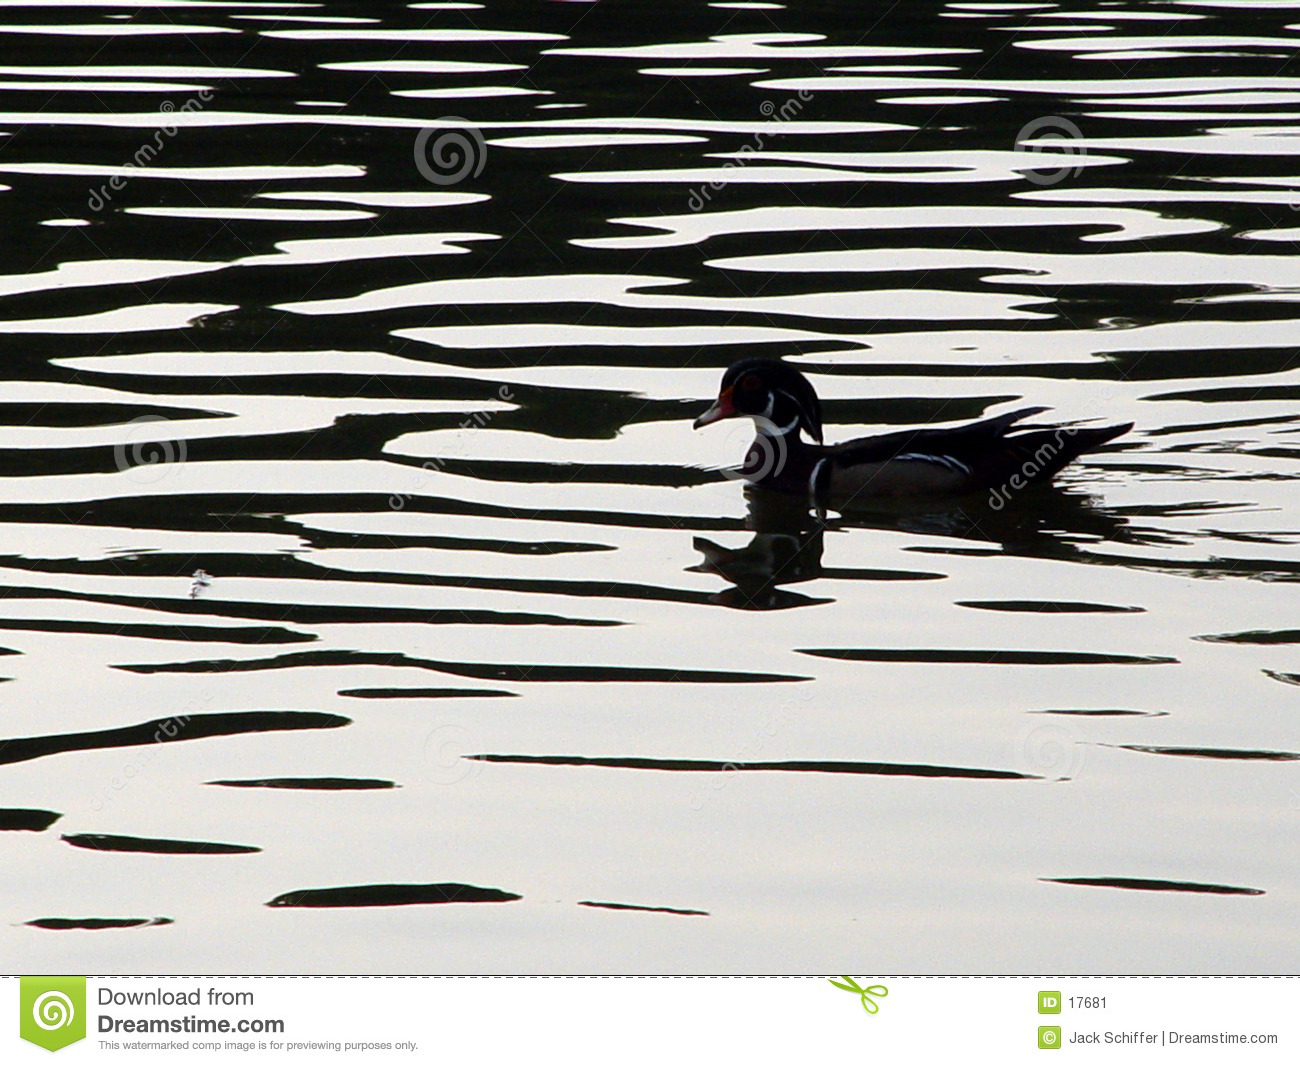 Woodduck Silhouette